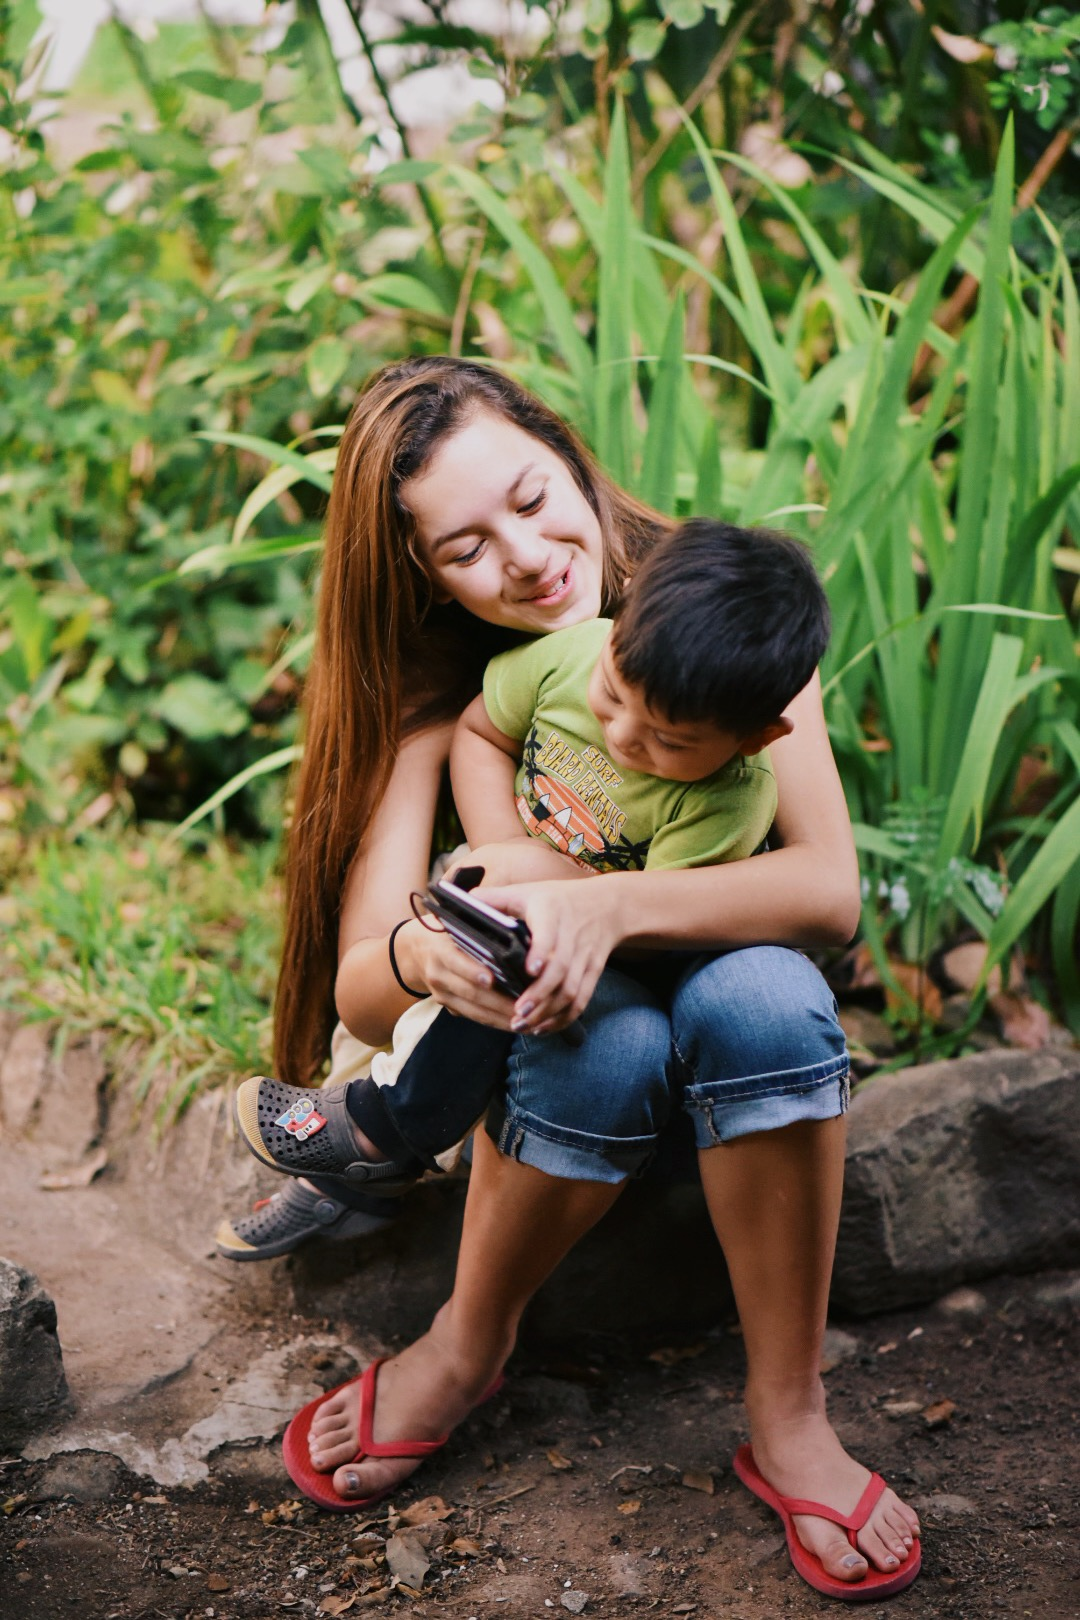 Genesis, the big sister of not only 3 younger siblings but a community of children, is a loving and skilled nurturer.